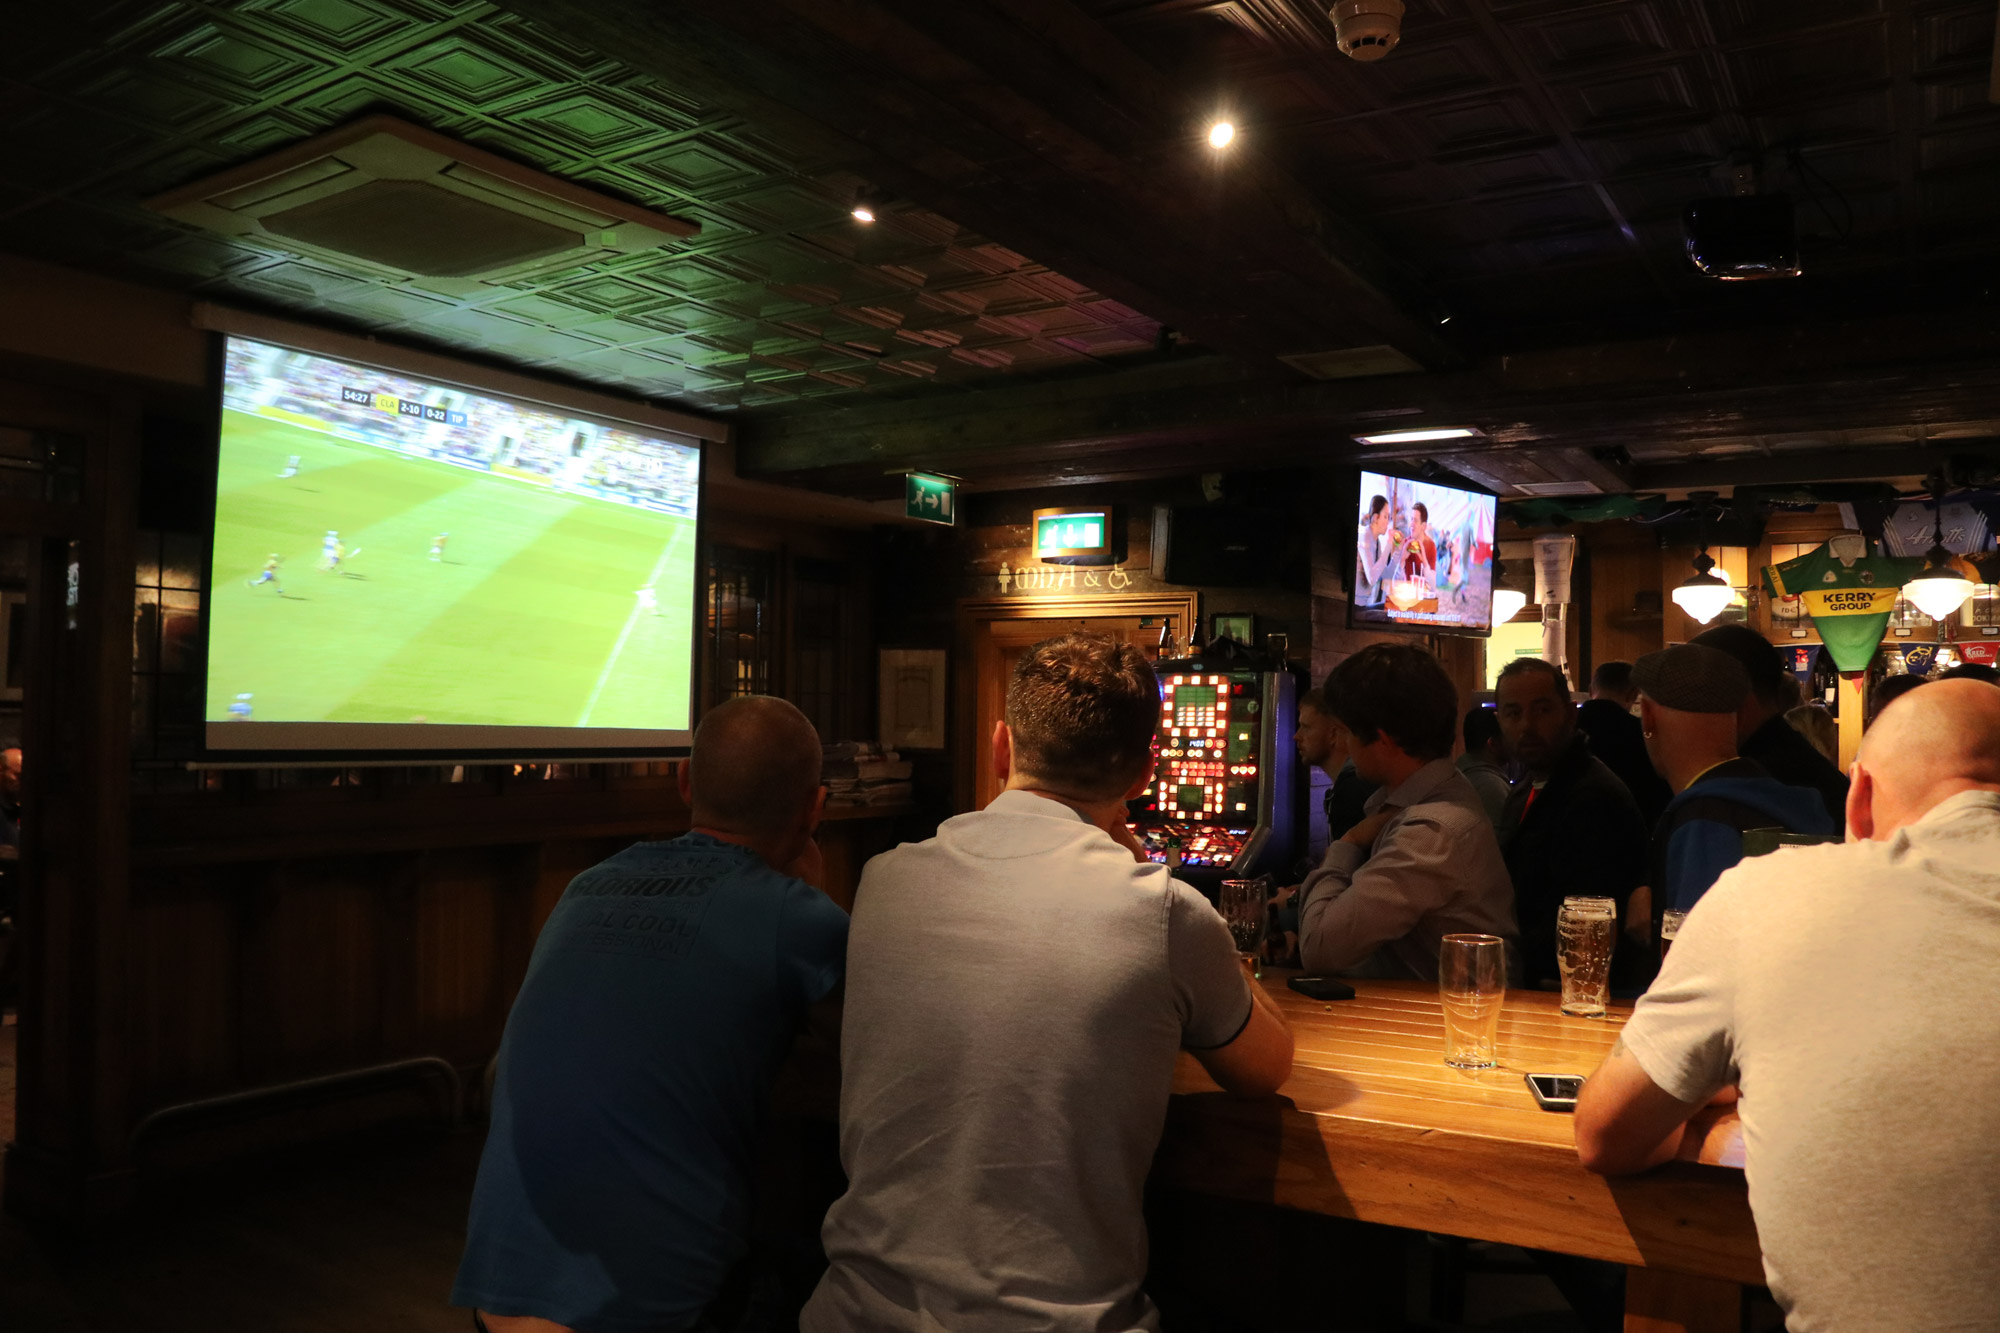 Mannenweekend in Edinburgh - Sport kijken in de Irish Pub